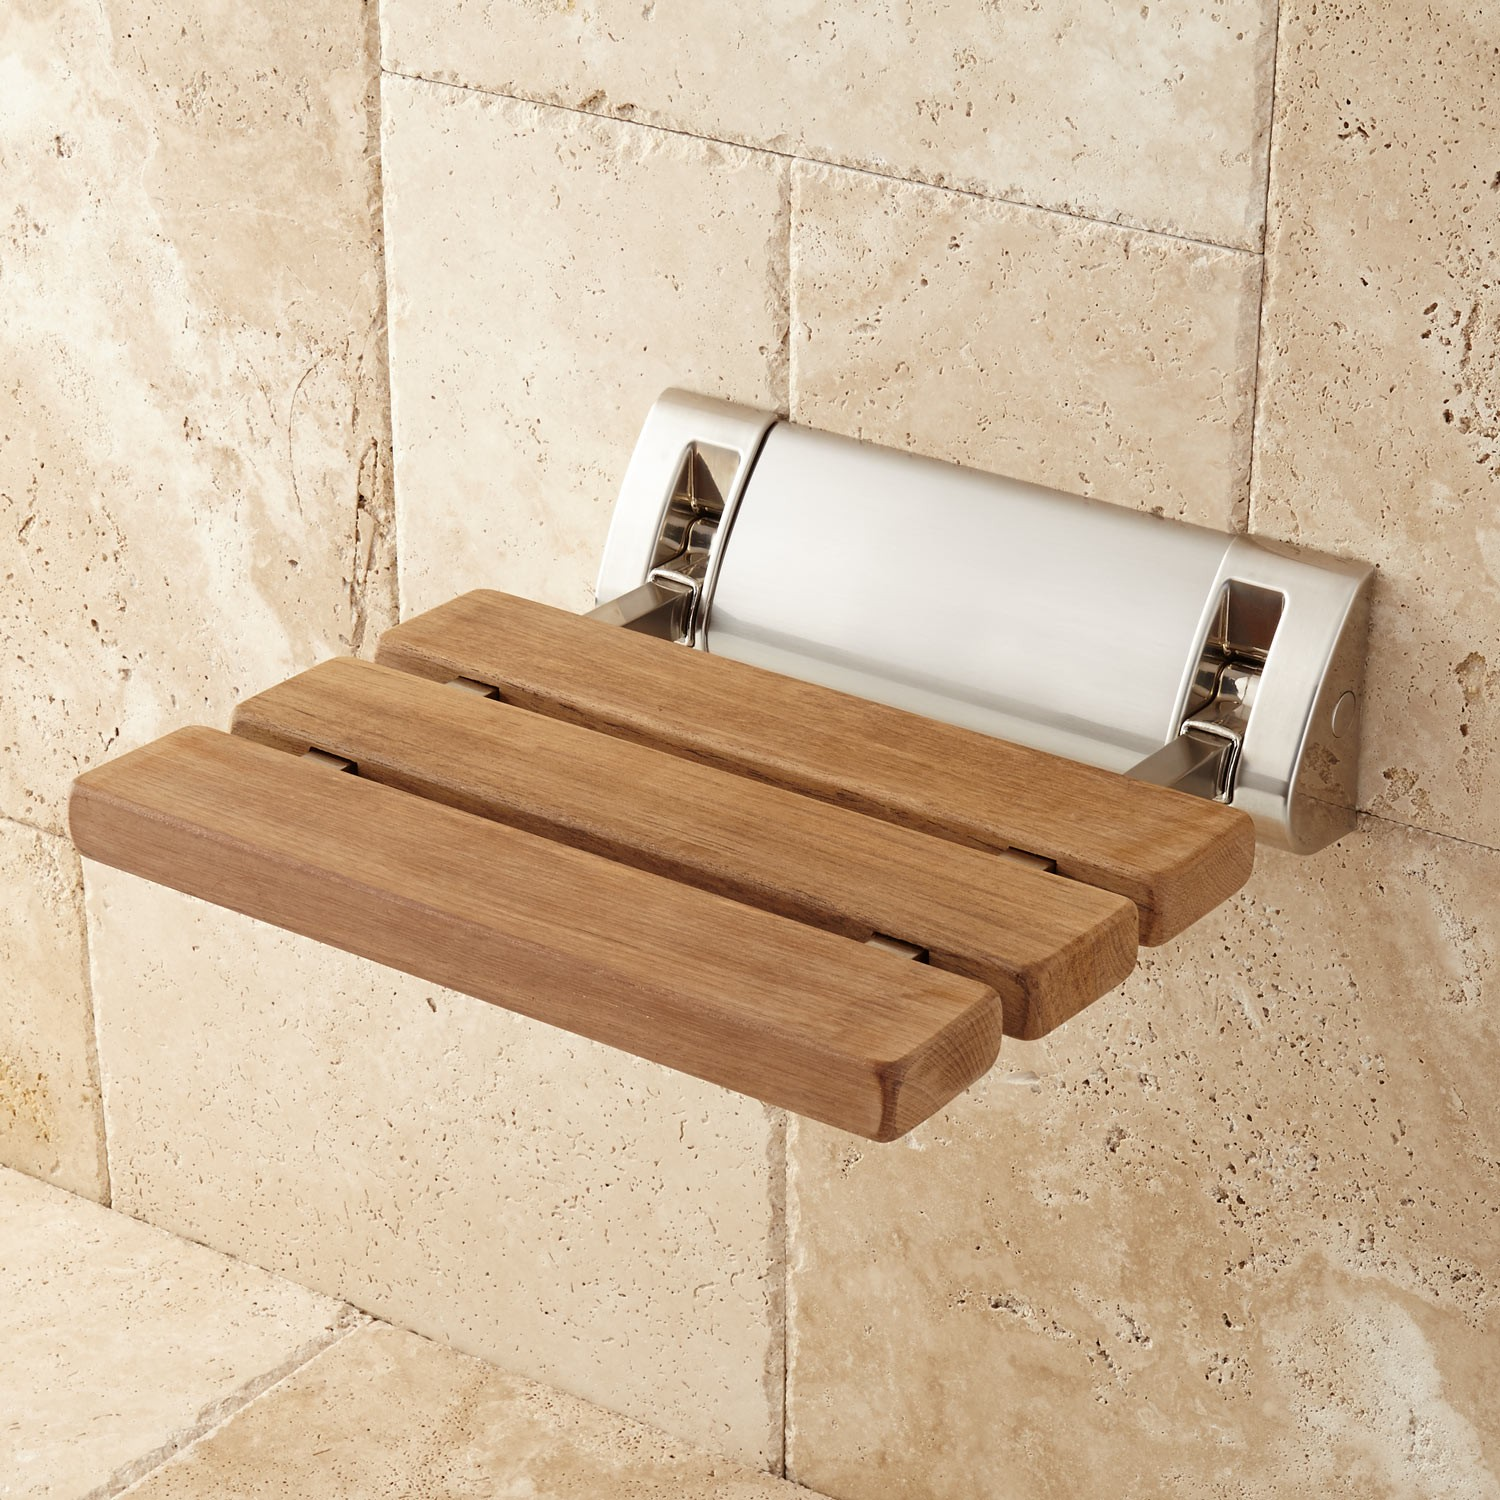 David Muers and Son Shower Seat